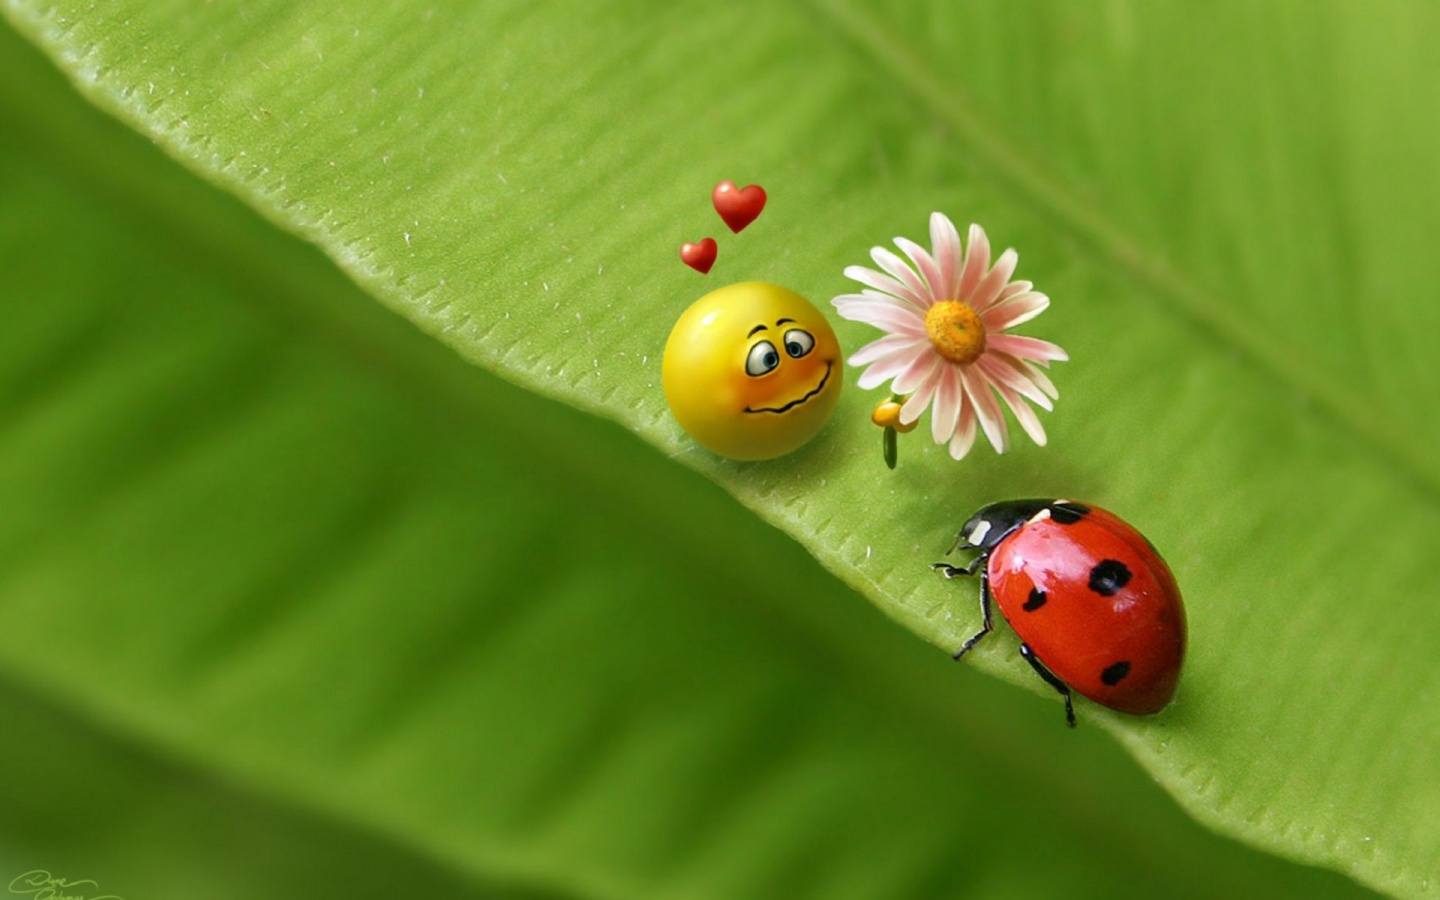 http://3.bp.blogspot.com/_fqhbn8YPG7w/TThJAki3dmI/AAAAAAAAAVY/oLe4I6lRZfQ/s1600/a_cute_yellow_ball_has_fallen_in_love_with_a_ladybug_and_is_giving_her_a_flower_in_this_wallpaper-1440x900.jpg